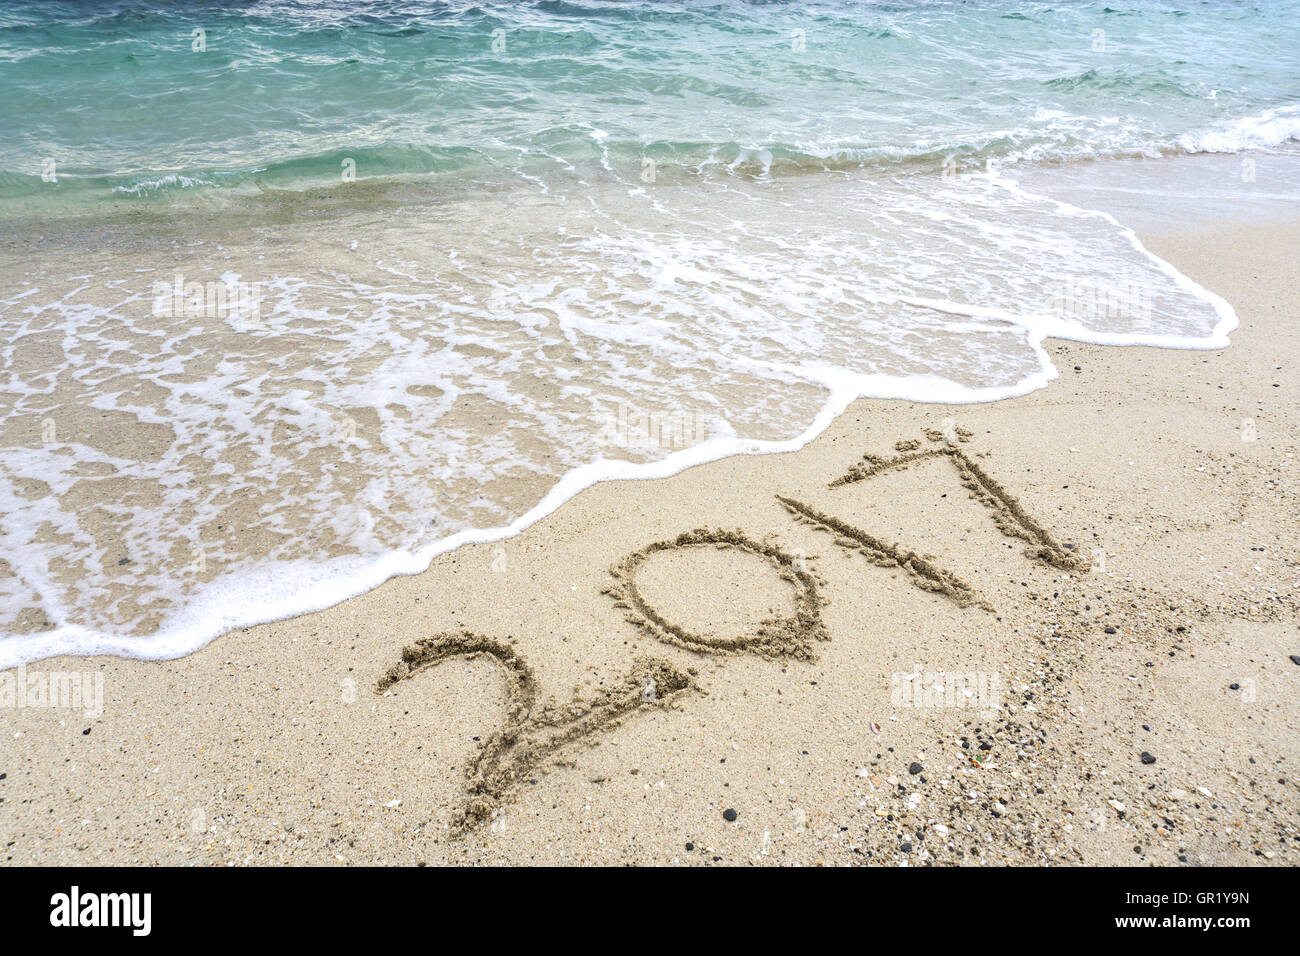 Number 2017 written on a sand beach with sea waves, Happy New Year concept. - Stock Image